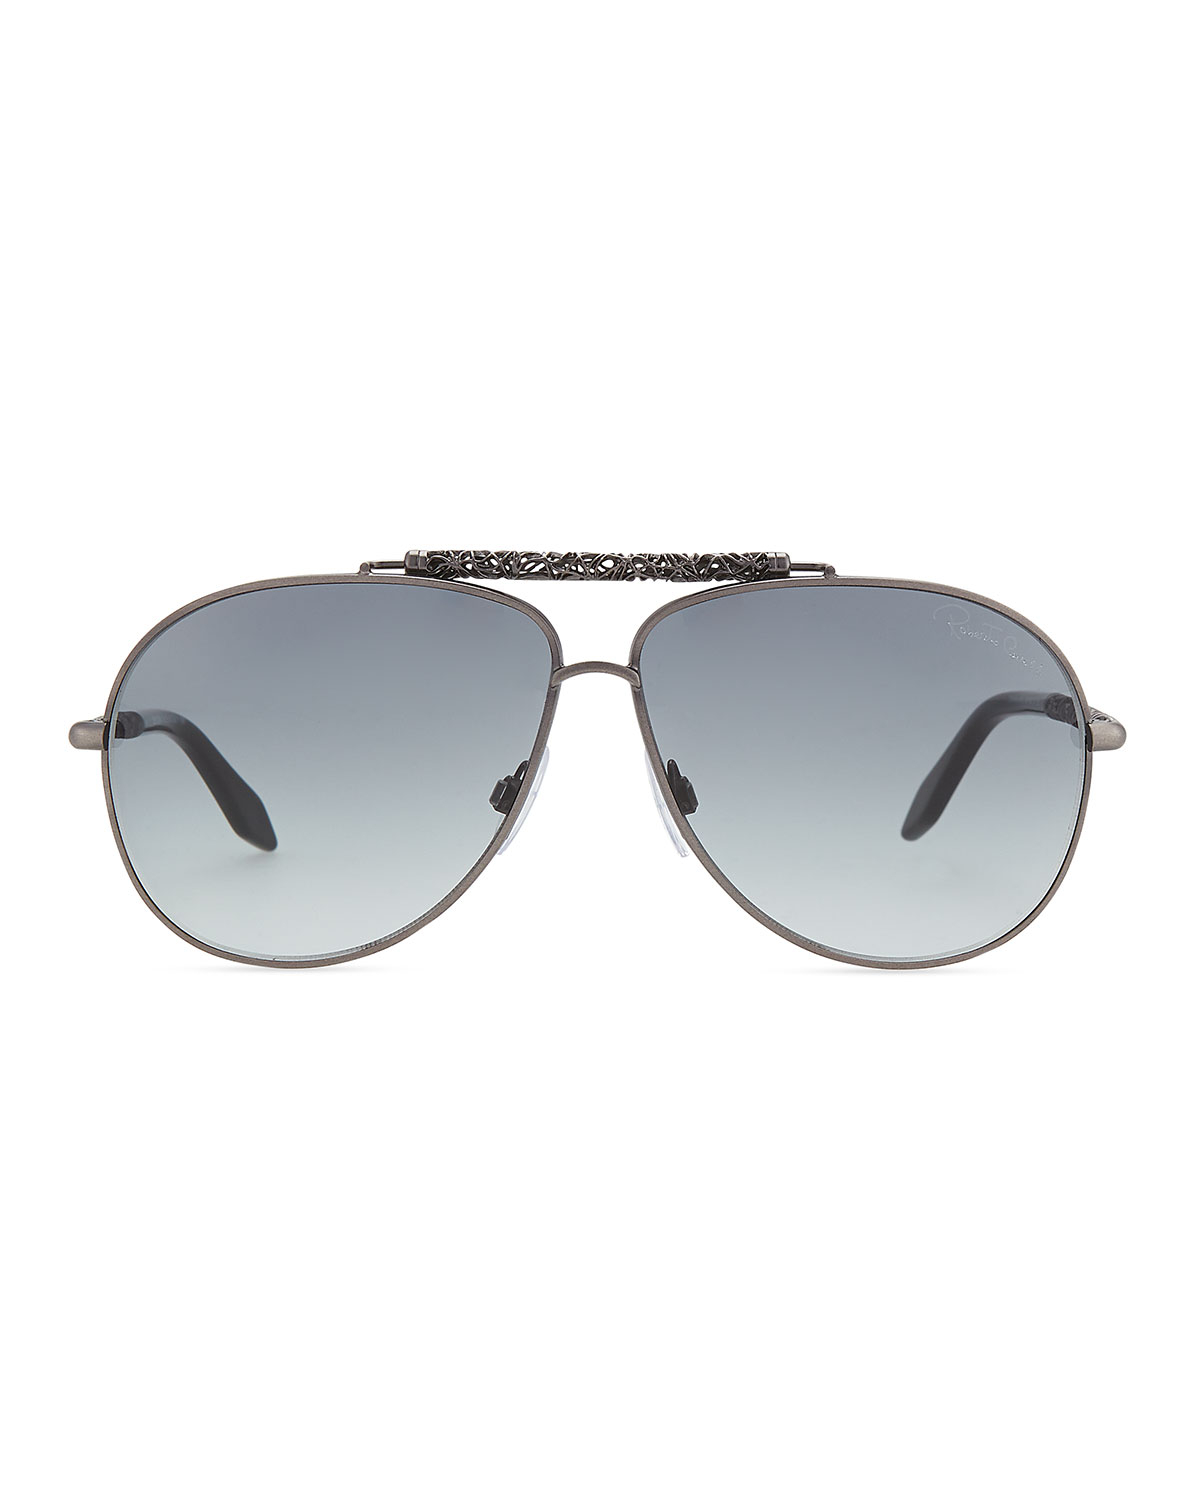 roberto cavalli aviator scrolled metal temple sunglasses